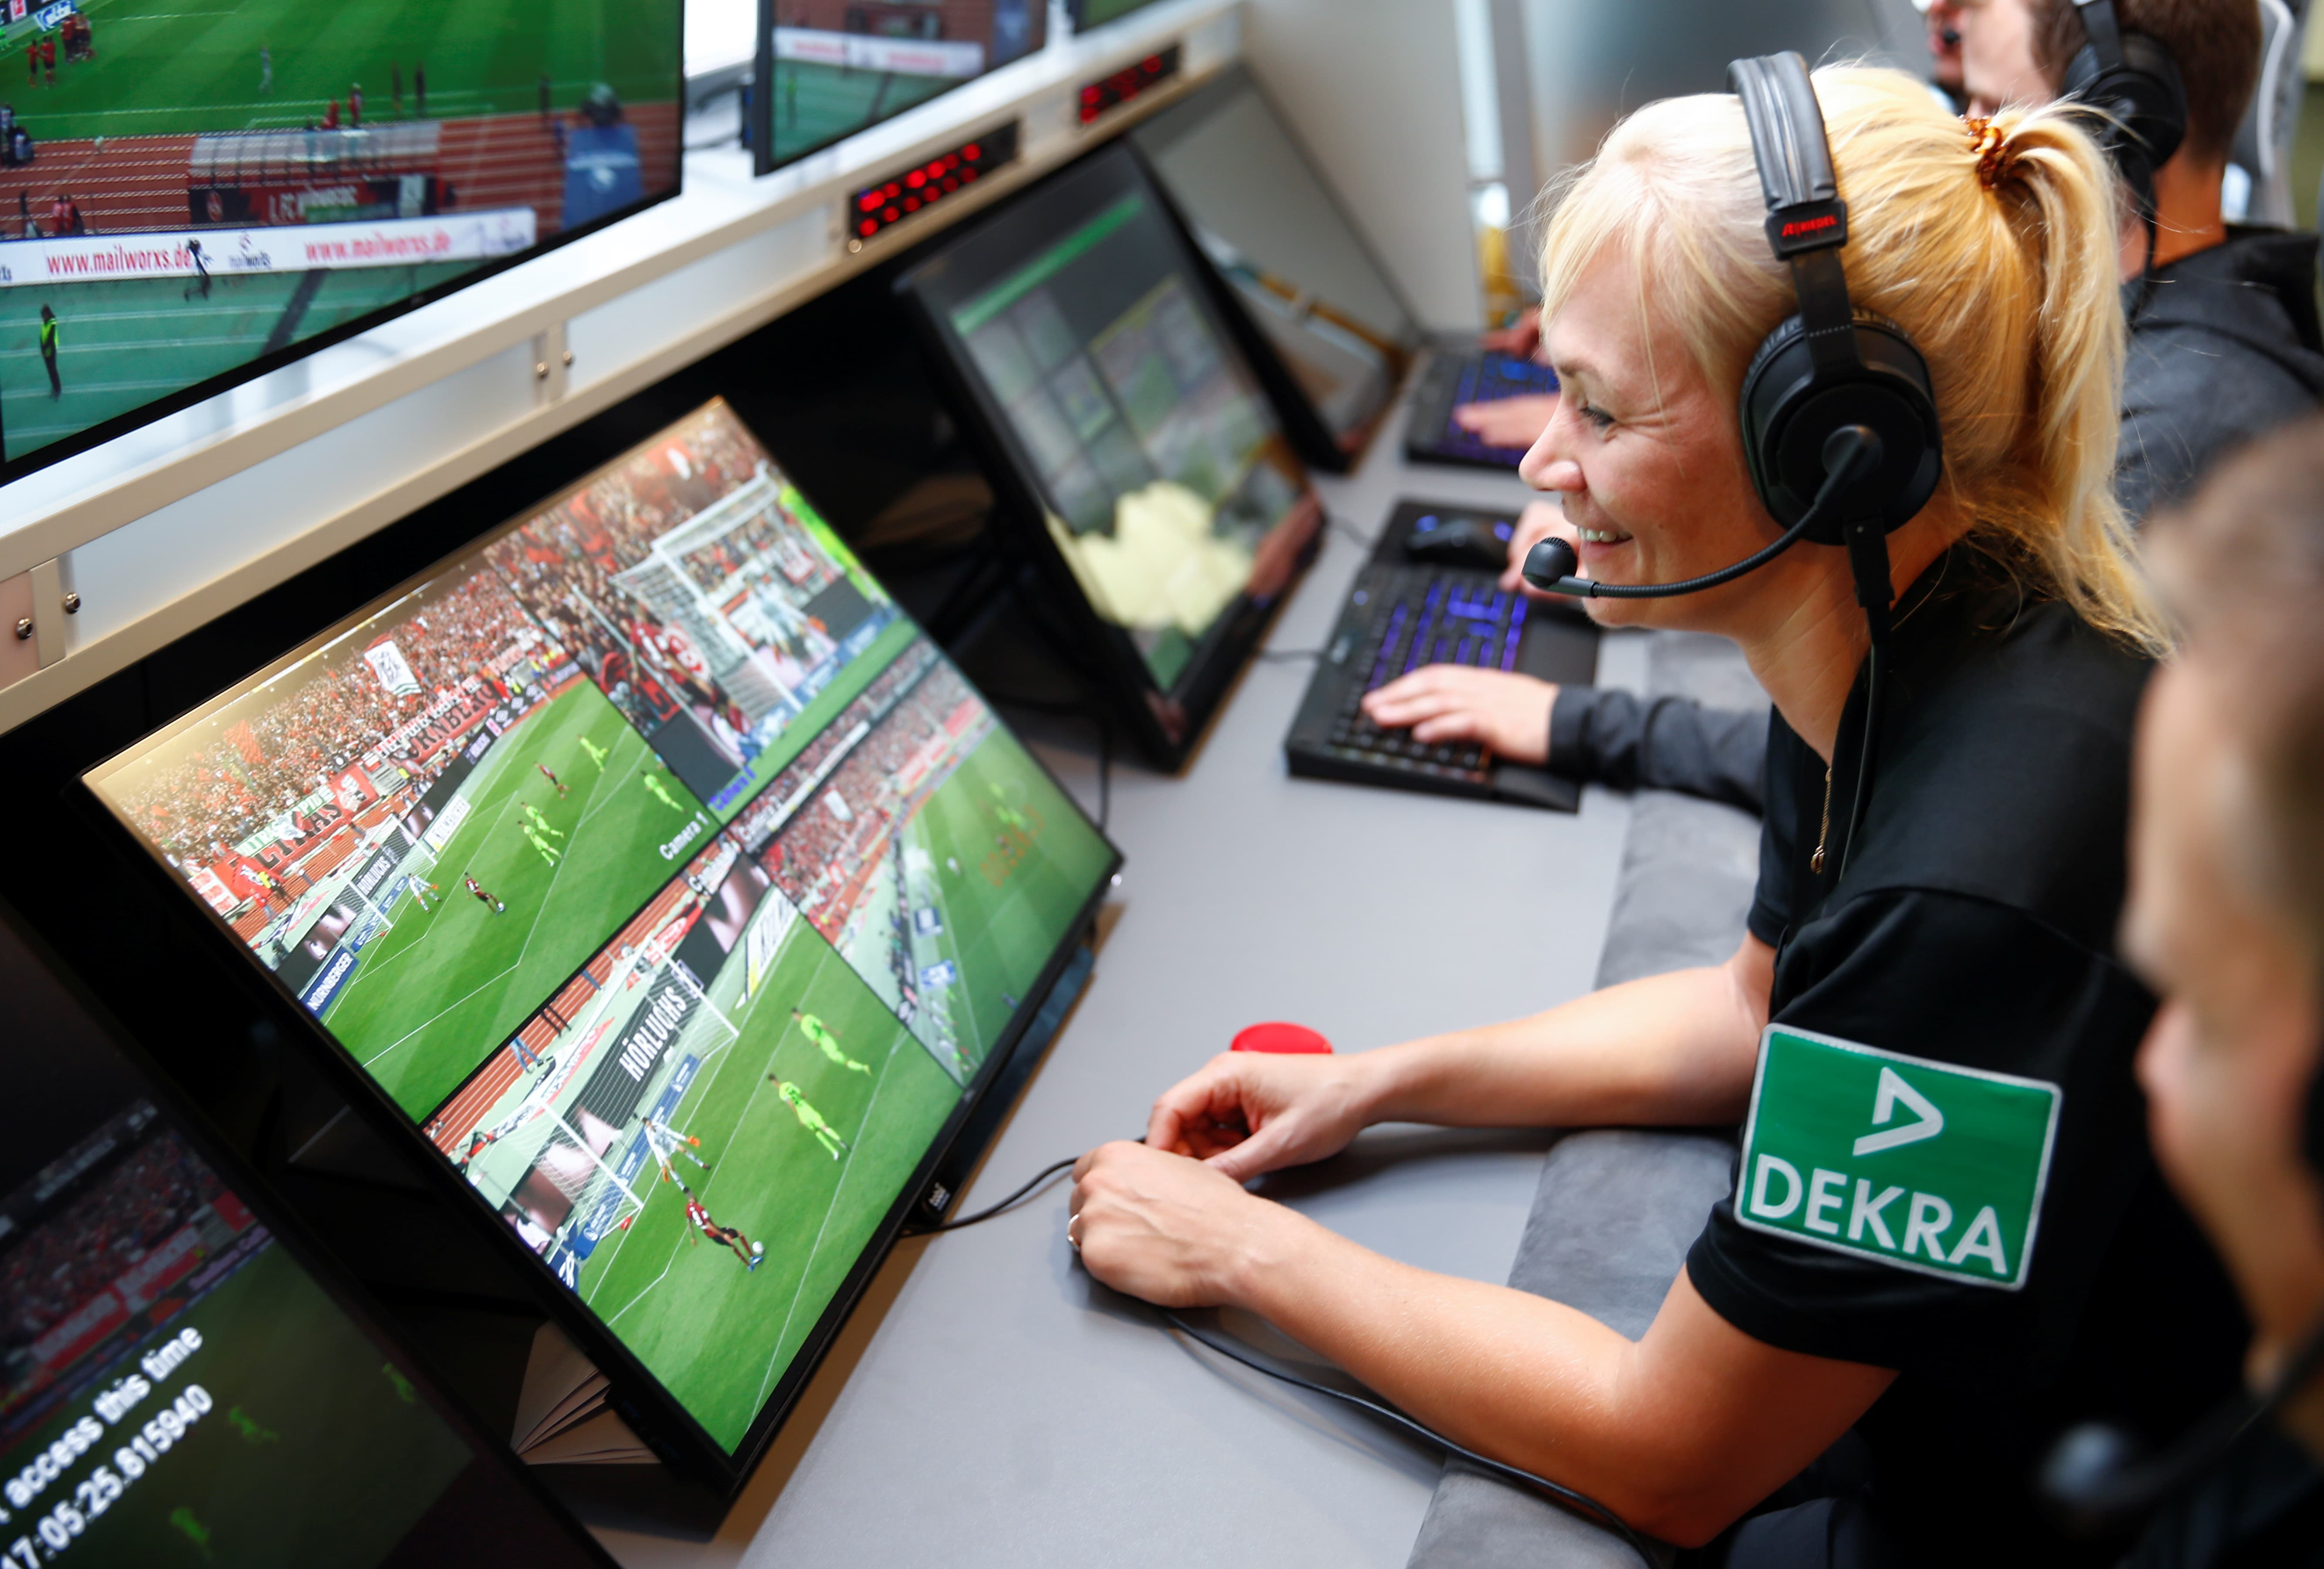 Serie A to use VAR against problematic rising racism issue